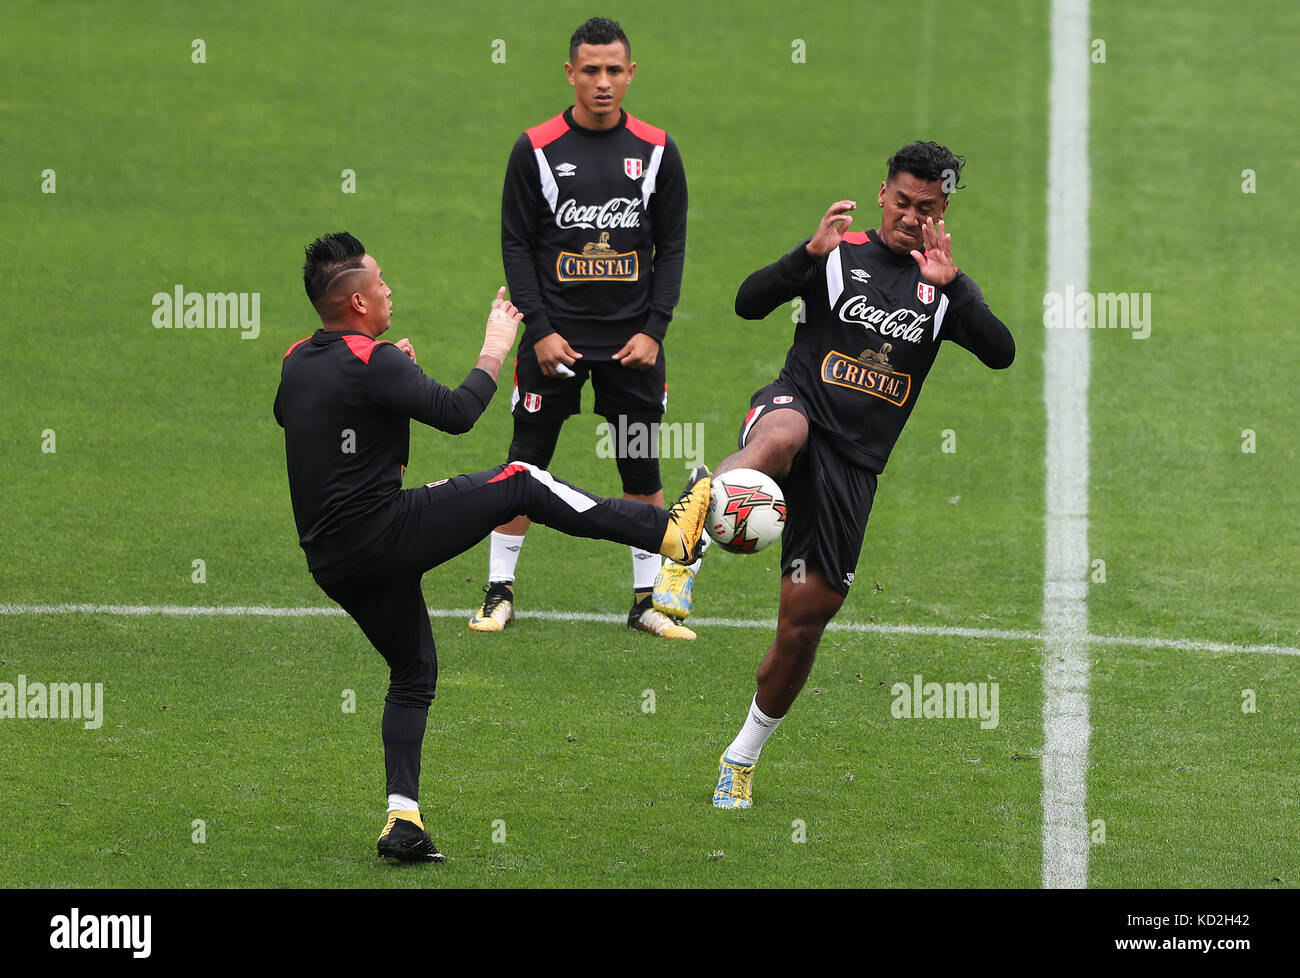 1d6763bb8 Peru s national soccer team players participate in a training session at  the National Stadium in Lima